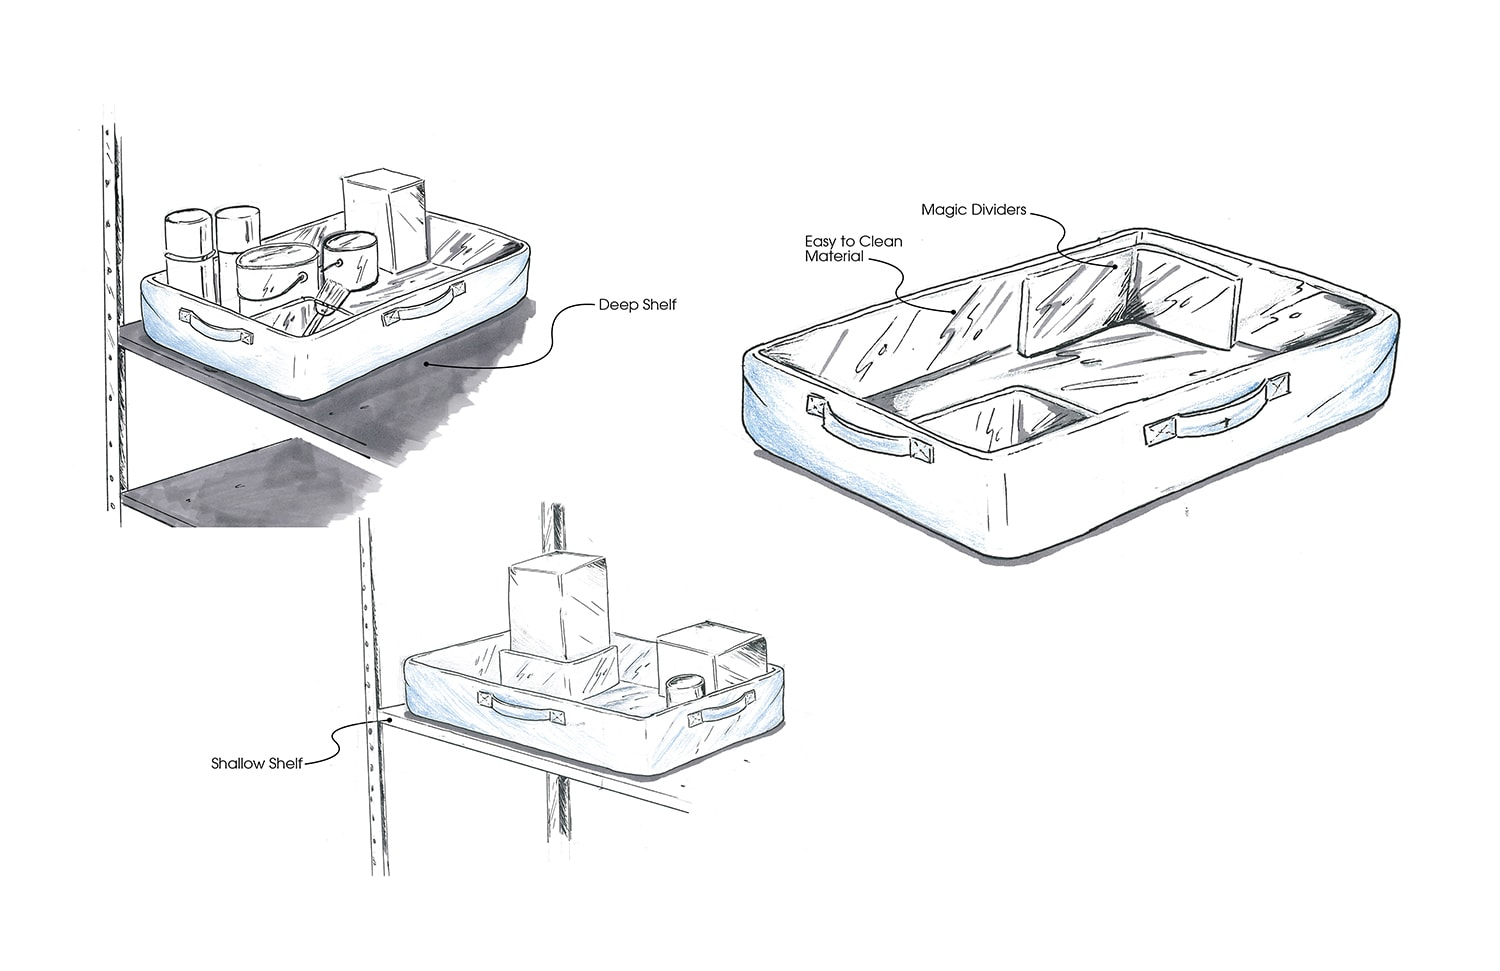 Target Storage Research Easy Clean Storage Tray Concept by Michael Graves